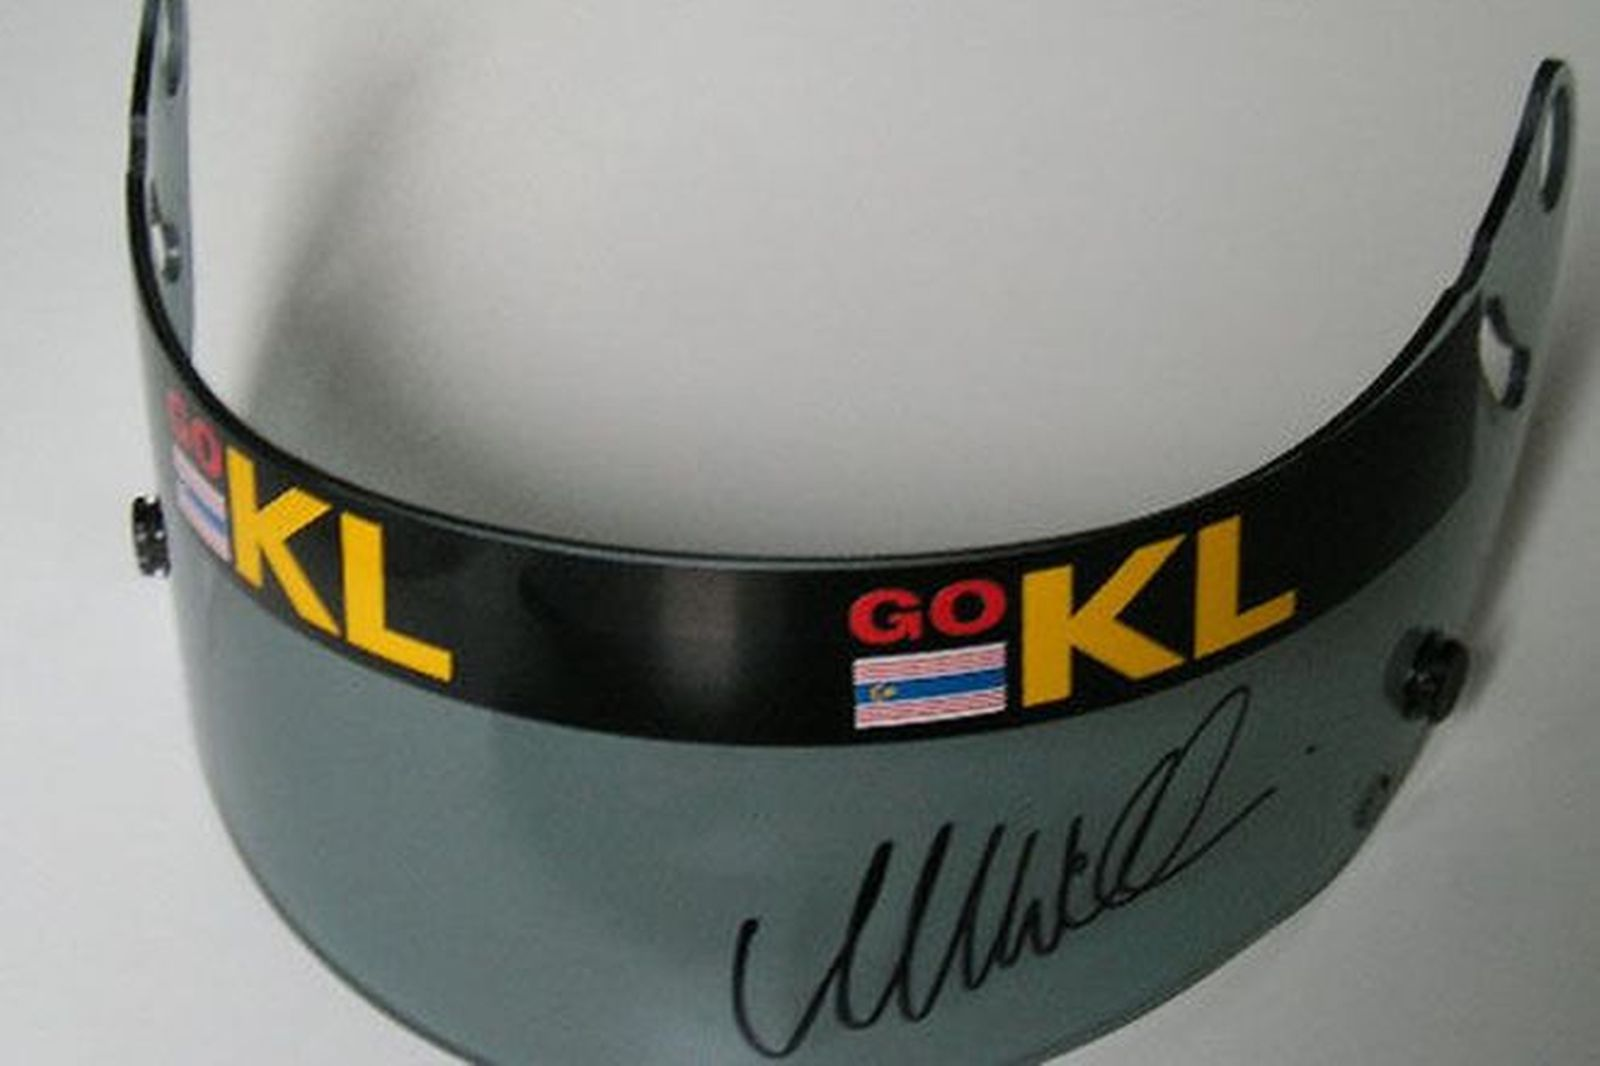 Visor - Mark Webber worn visor in Minardi Asiatech complete with stone chips and signed photo